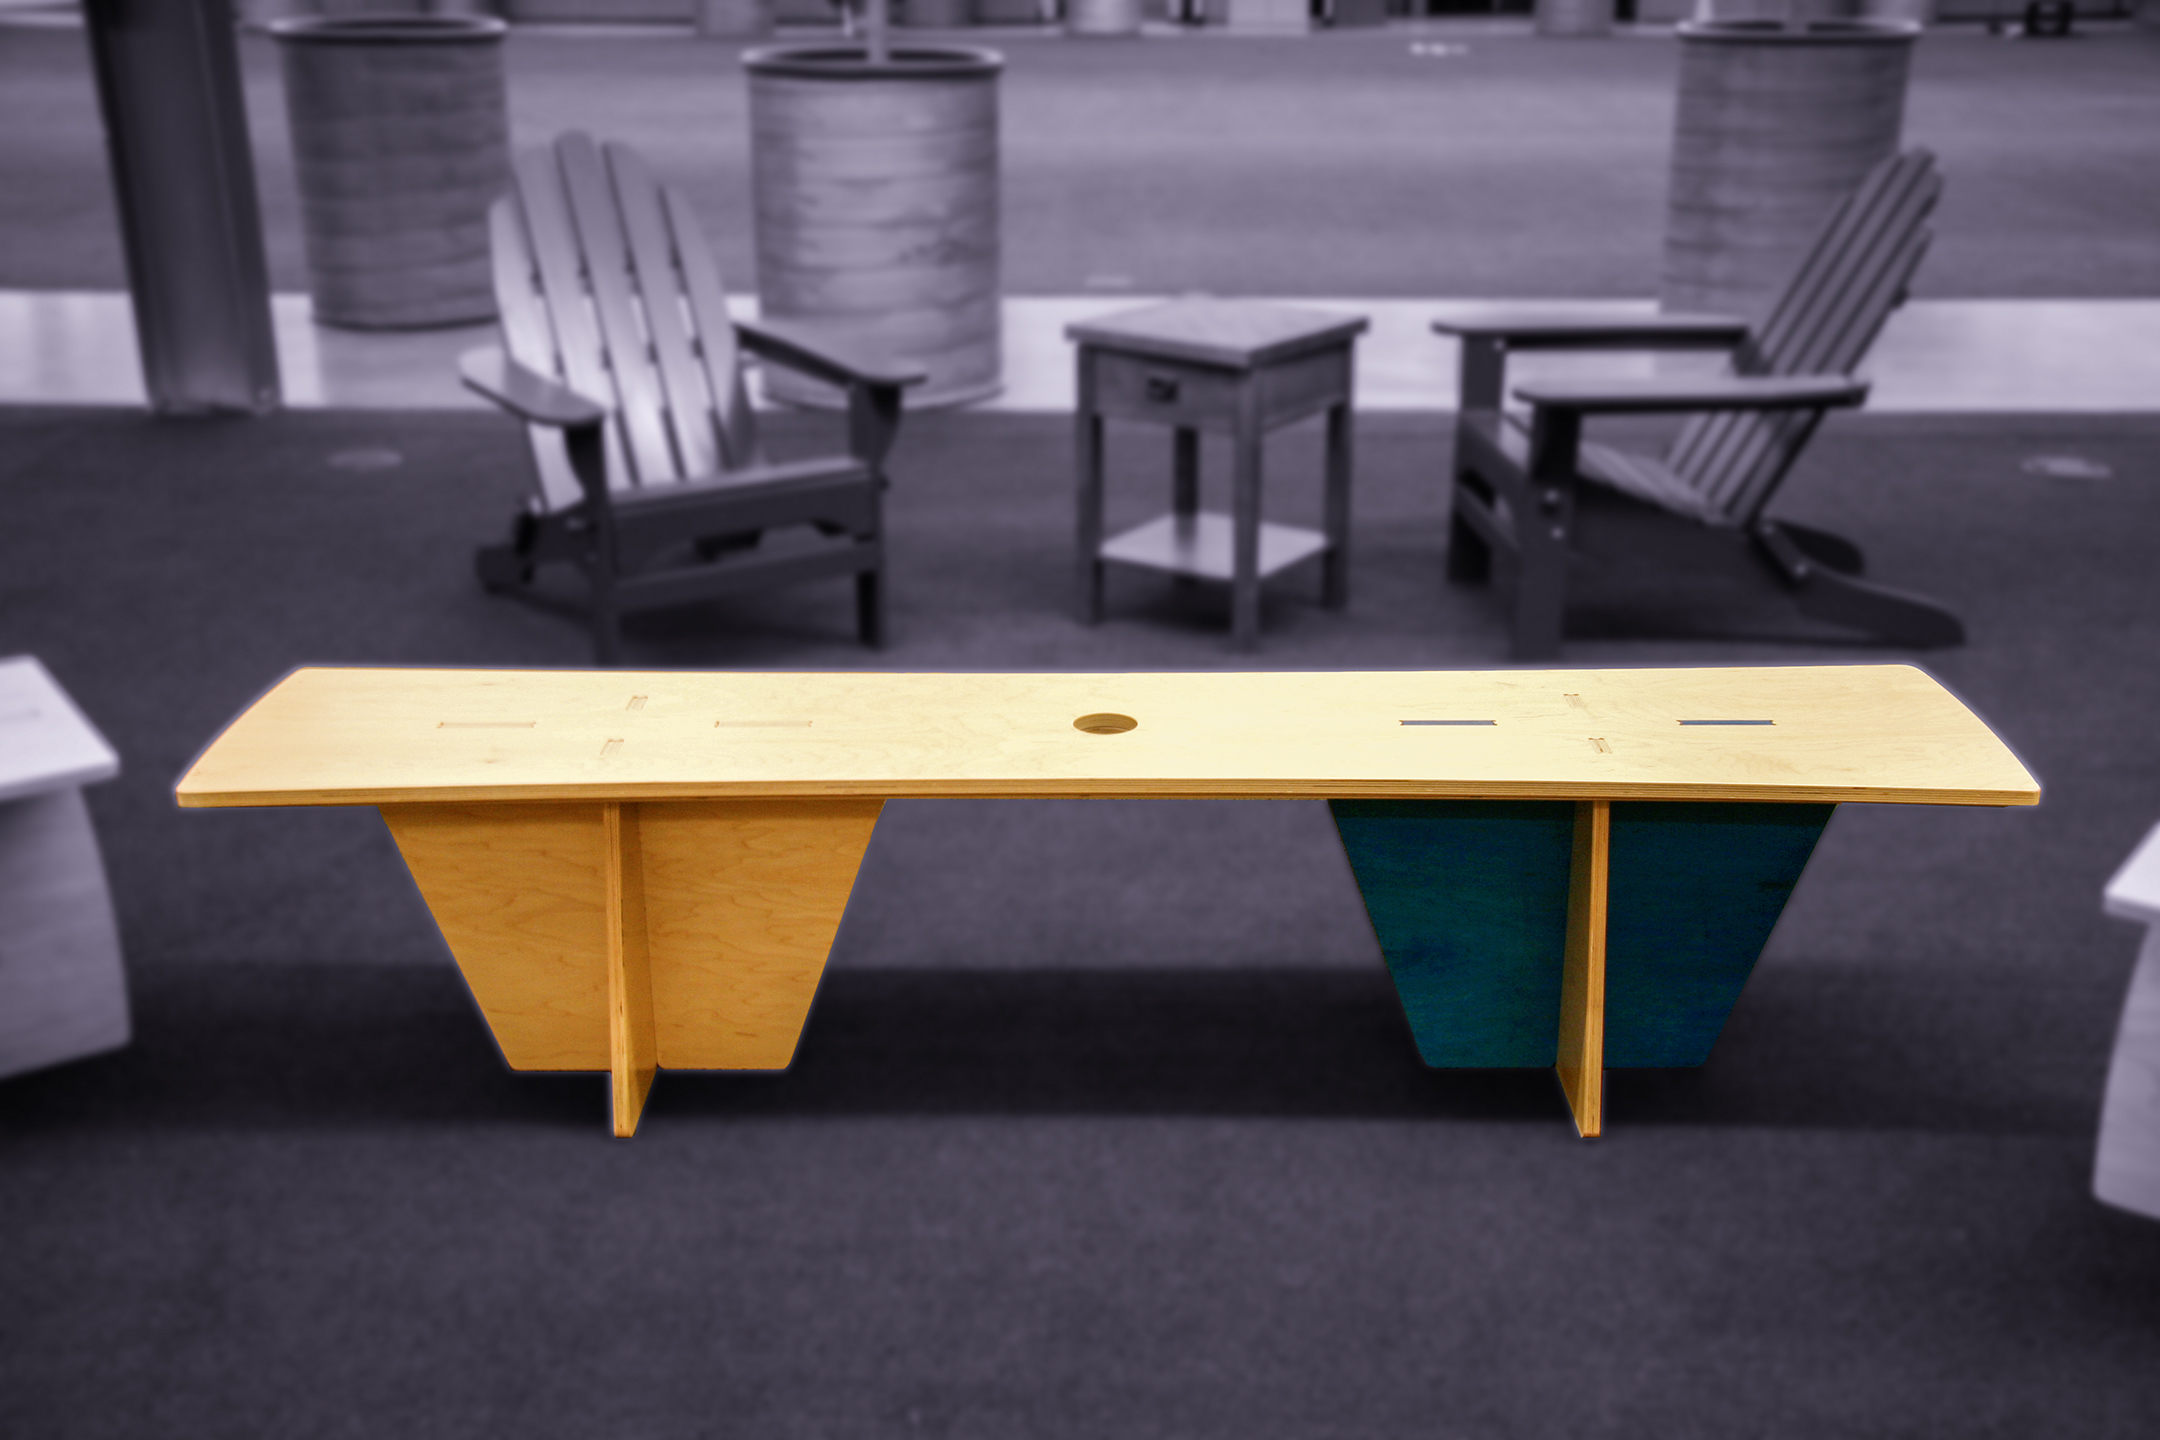 Two different bench designs propagate the office to complement the tables.